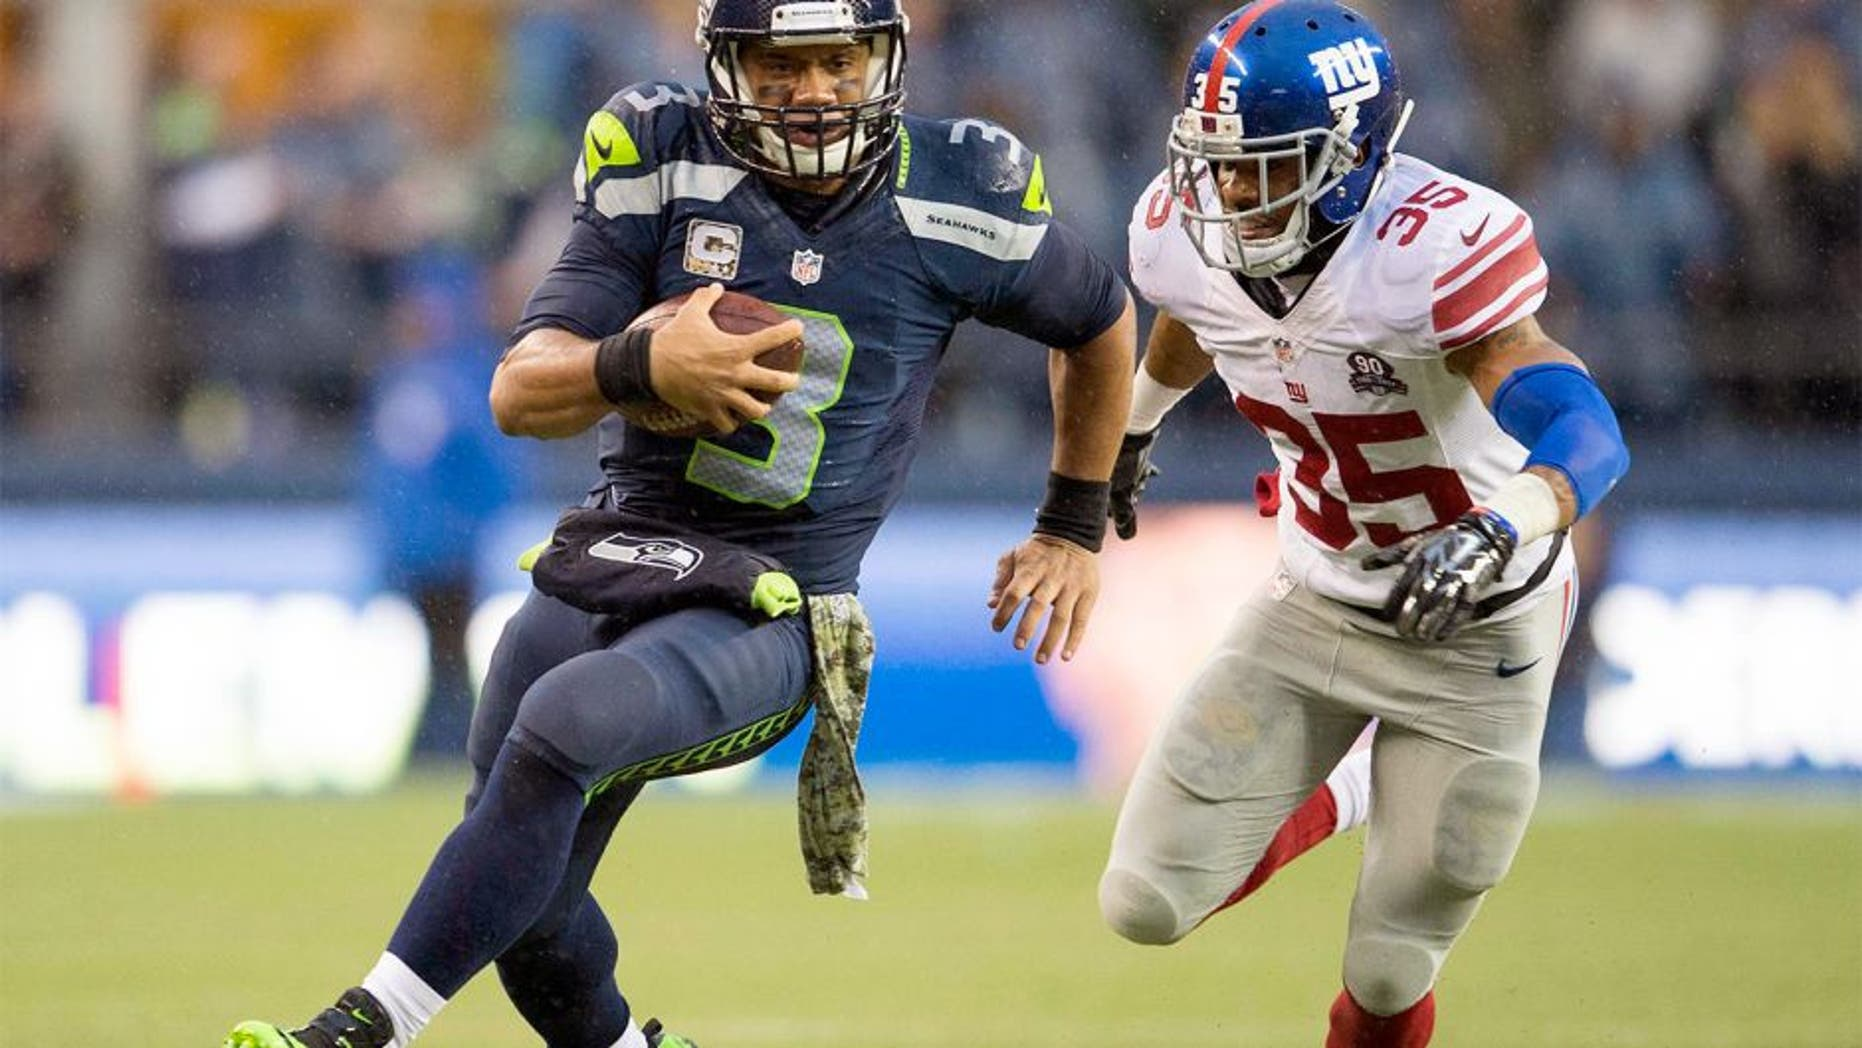 Nov 9, 2014; Seattle, WA, USA; Seattle Seahawks quarterback Russell Wilson (3) carries the ball while being chased by New York Giants free safety Quintin Demps (35) during the second half at CenturyLink Field. Seattle defeated New York 38-17. Mandatory Credit: Steven Bisig-USA TODAY Sports